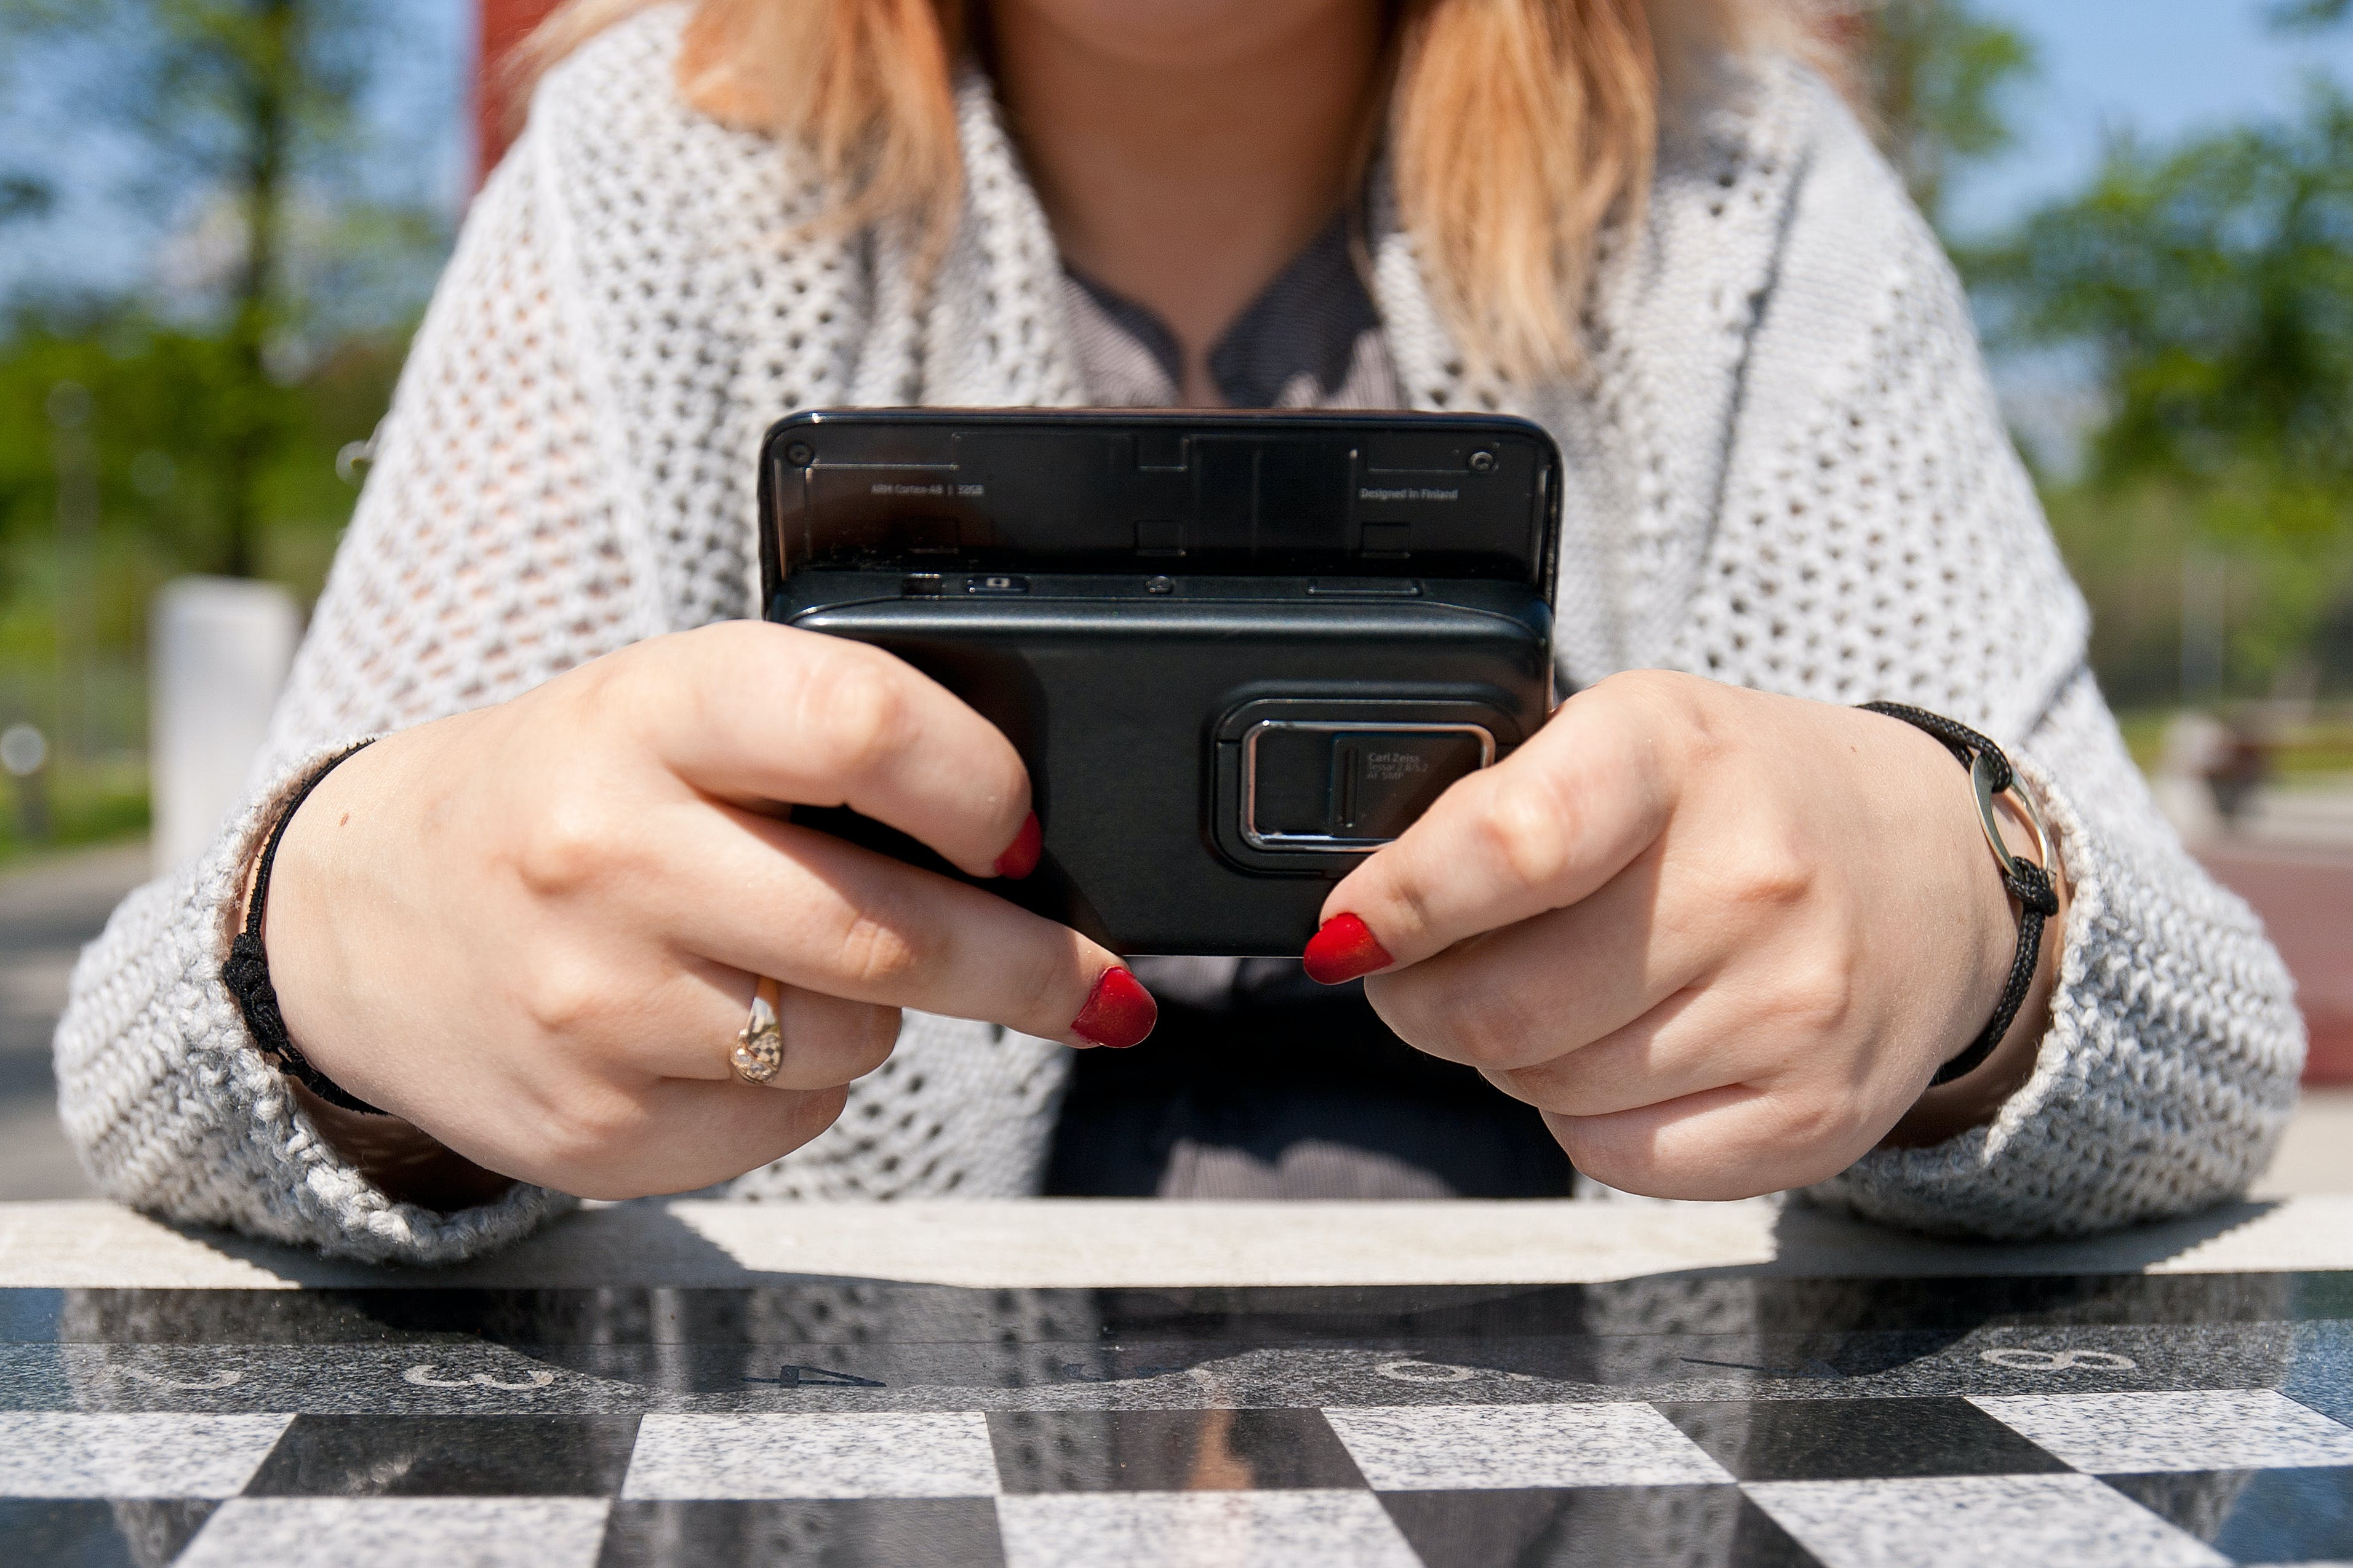 Person Holding Slide Qwerty Phone While Leaning on Table